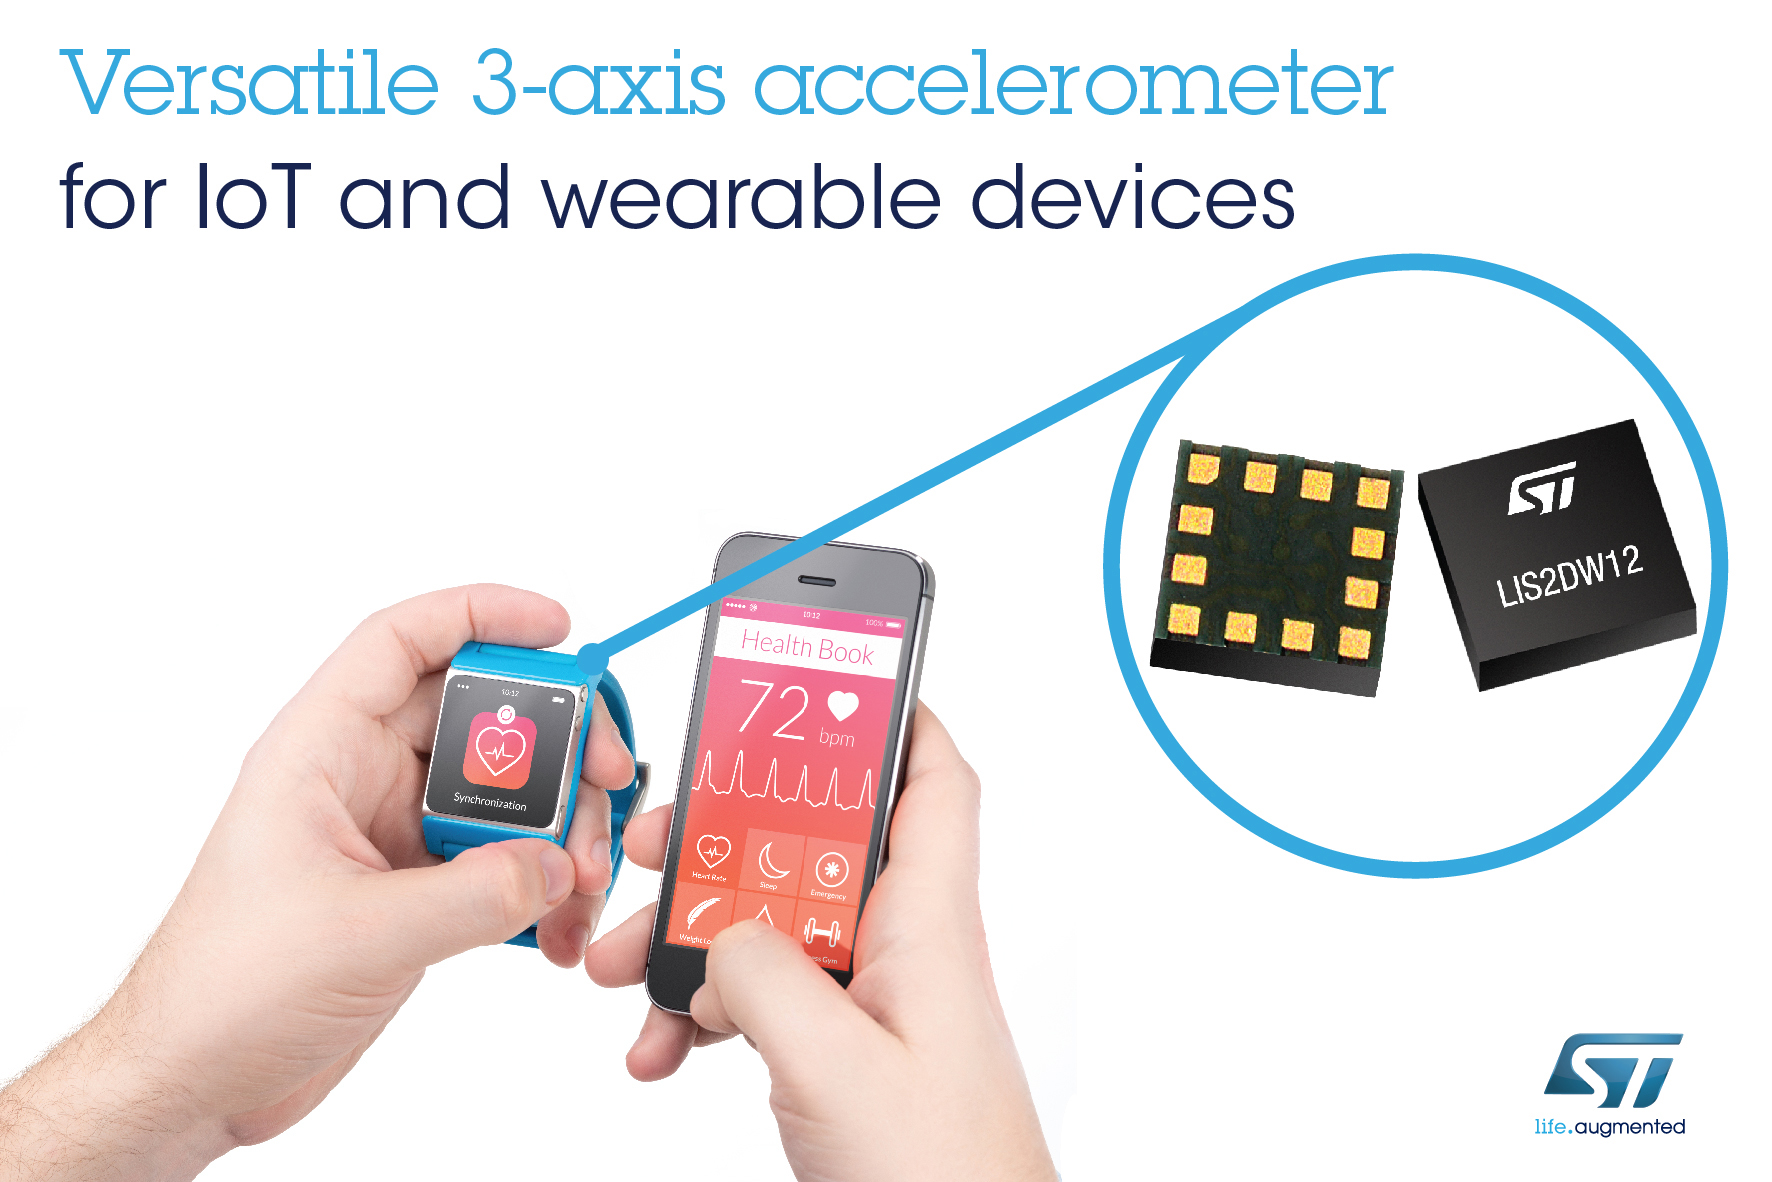 Versatile Accelerometer from STMicroelectronics Delivers Class